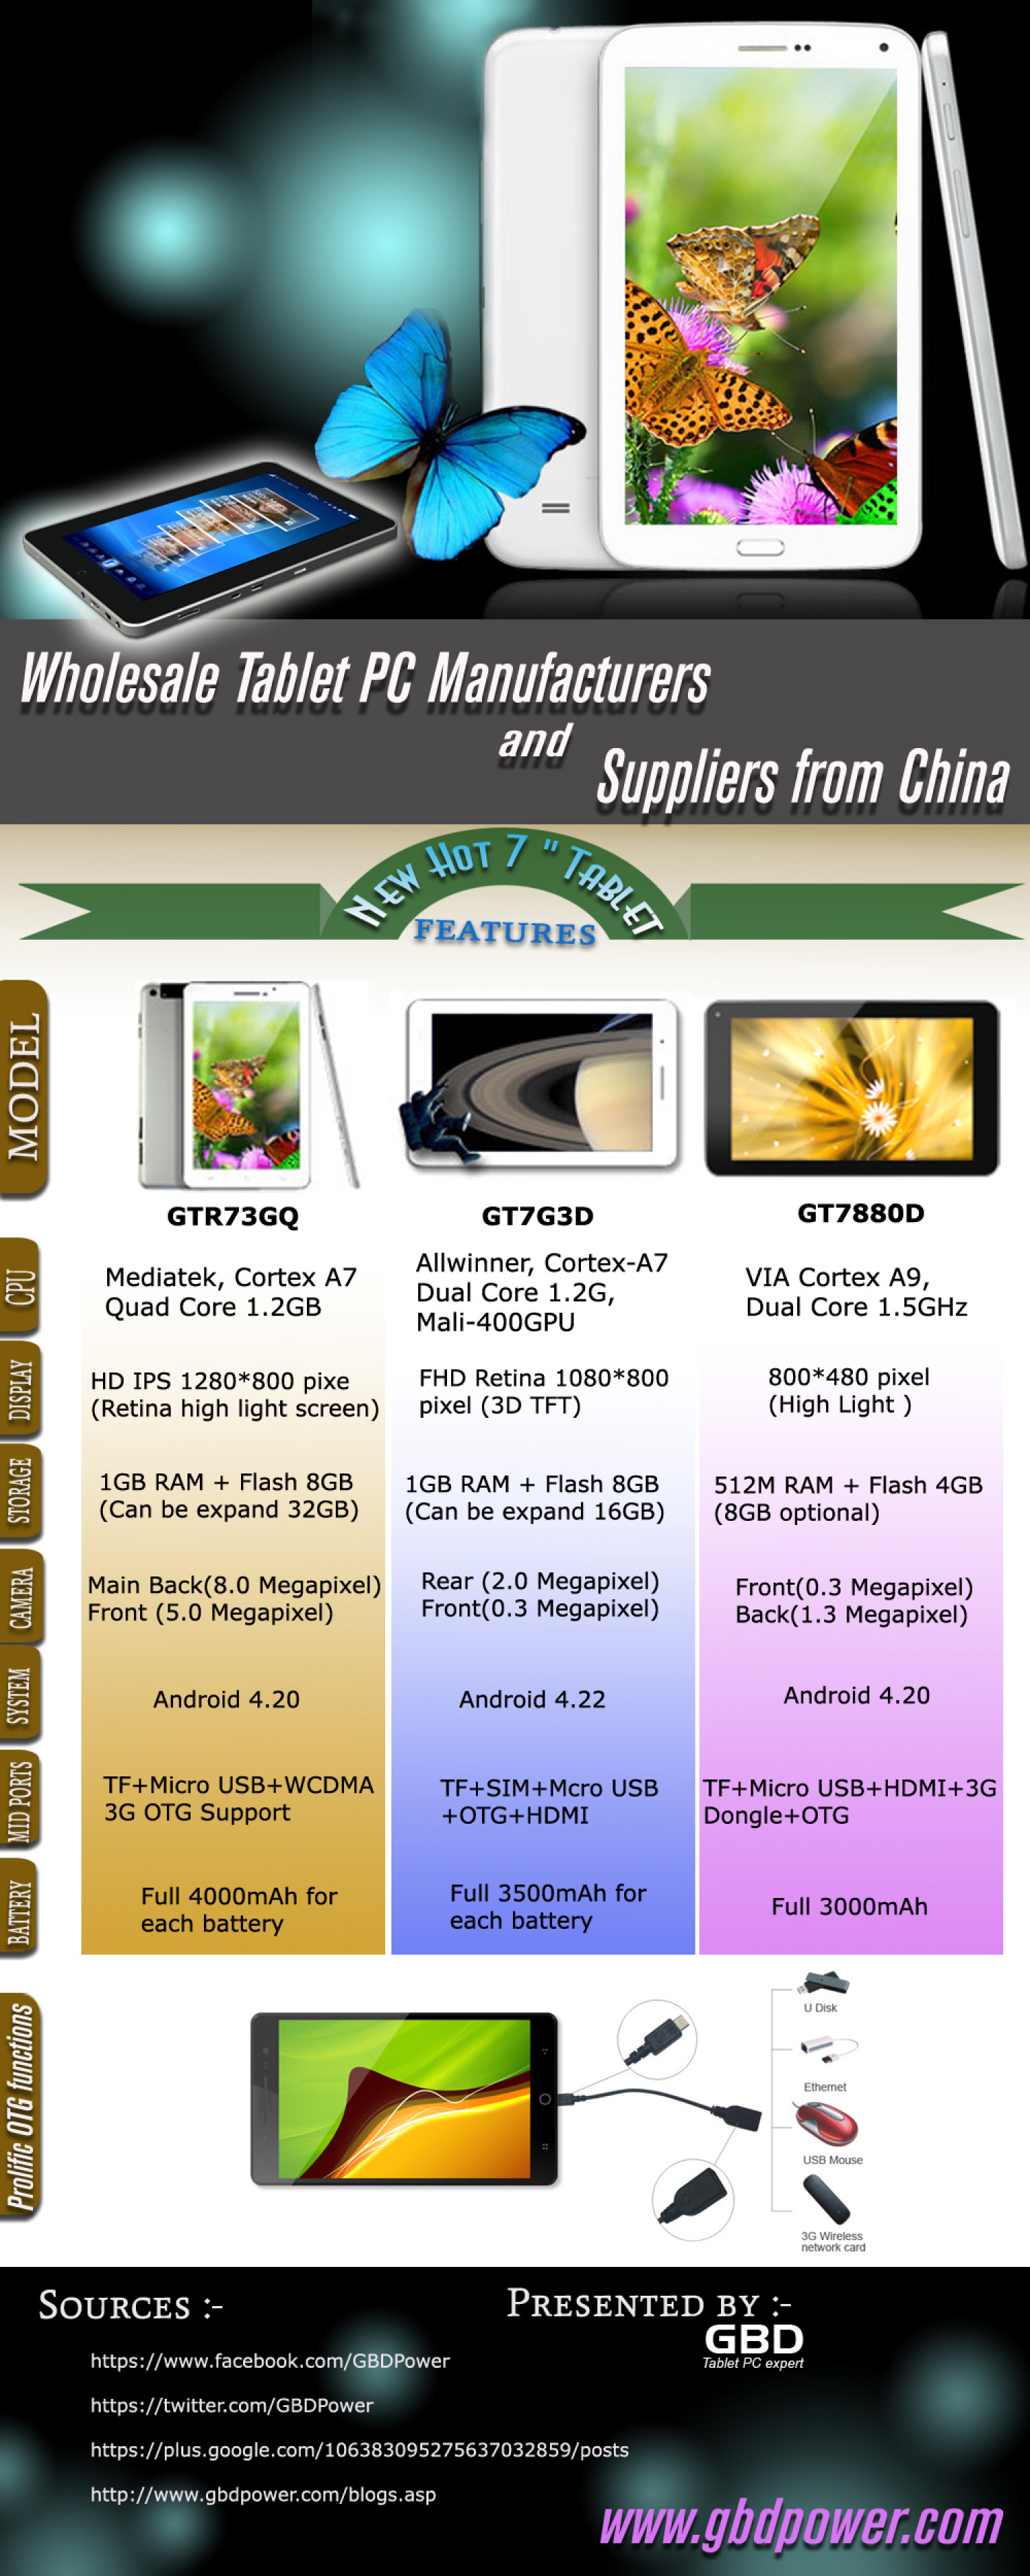 Wholesale Tablet PC Manufacturers and suppliers from China   Visual ly